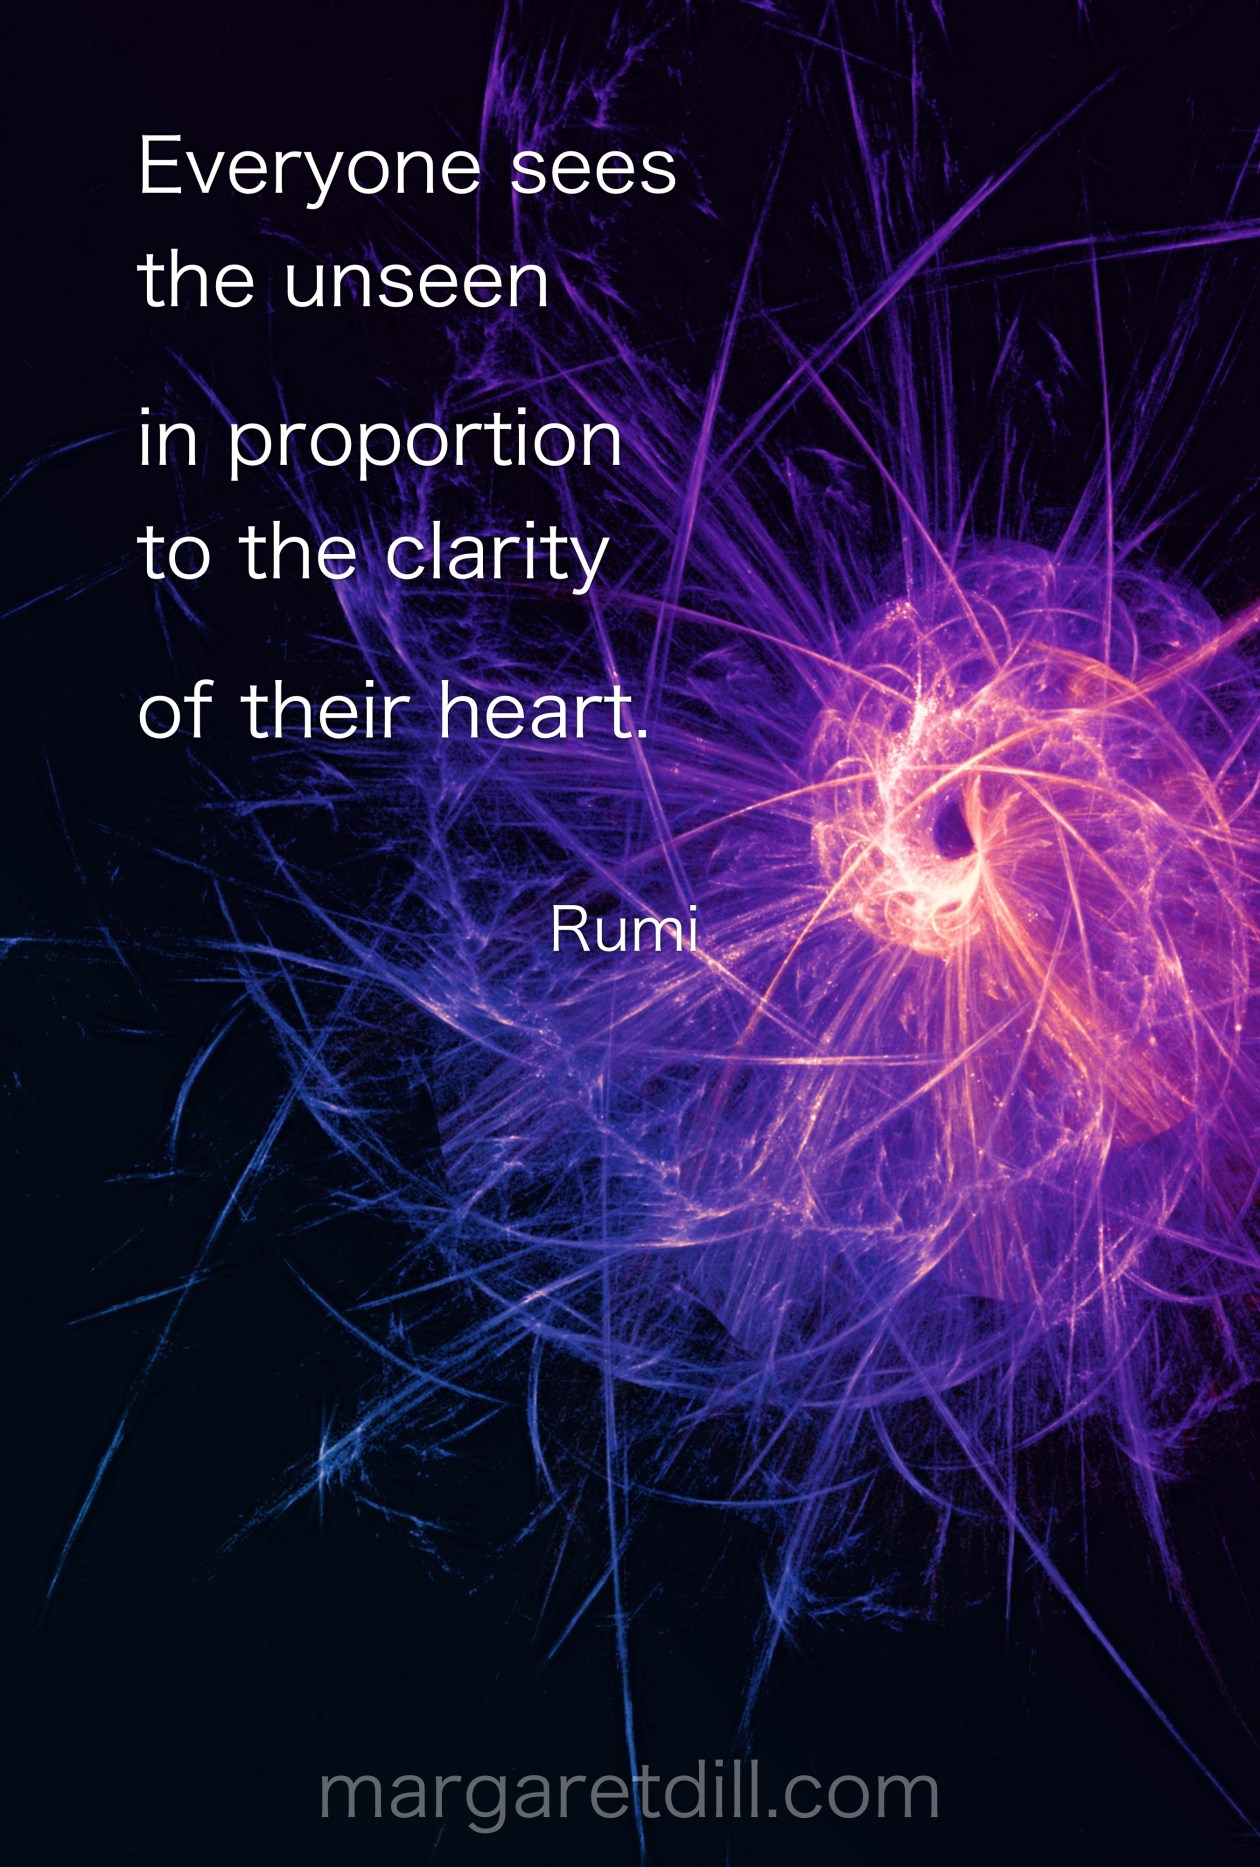 Everyone Sees the unseen Rumi Quote Everyone Sees the unseen #wordstoliveby #mindfulness #meditation #Spiritualawakening #wordsofwisdom #quotations #rumi #rumiquotes